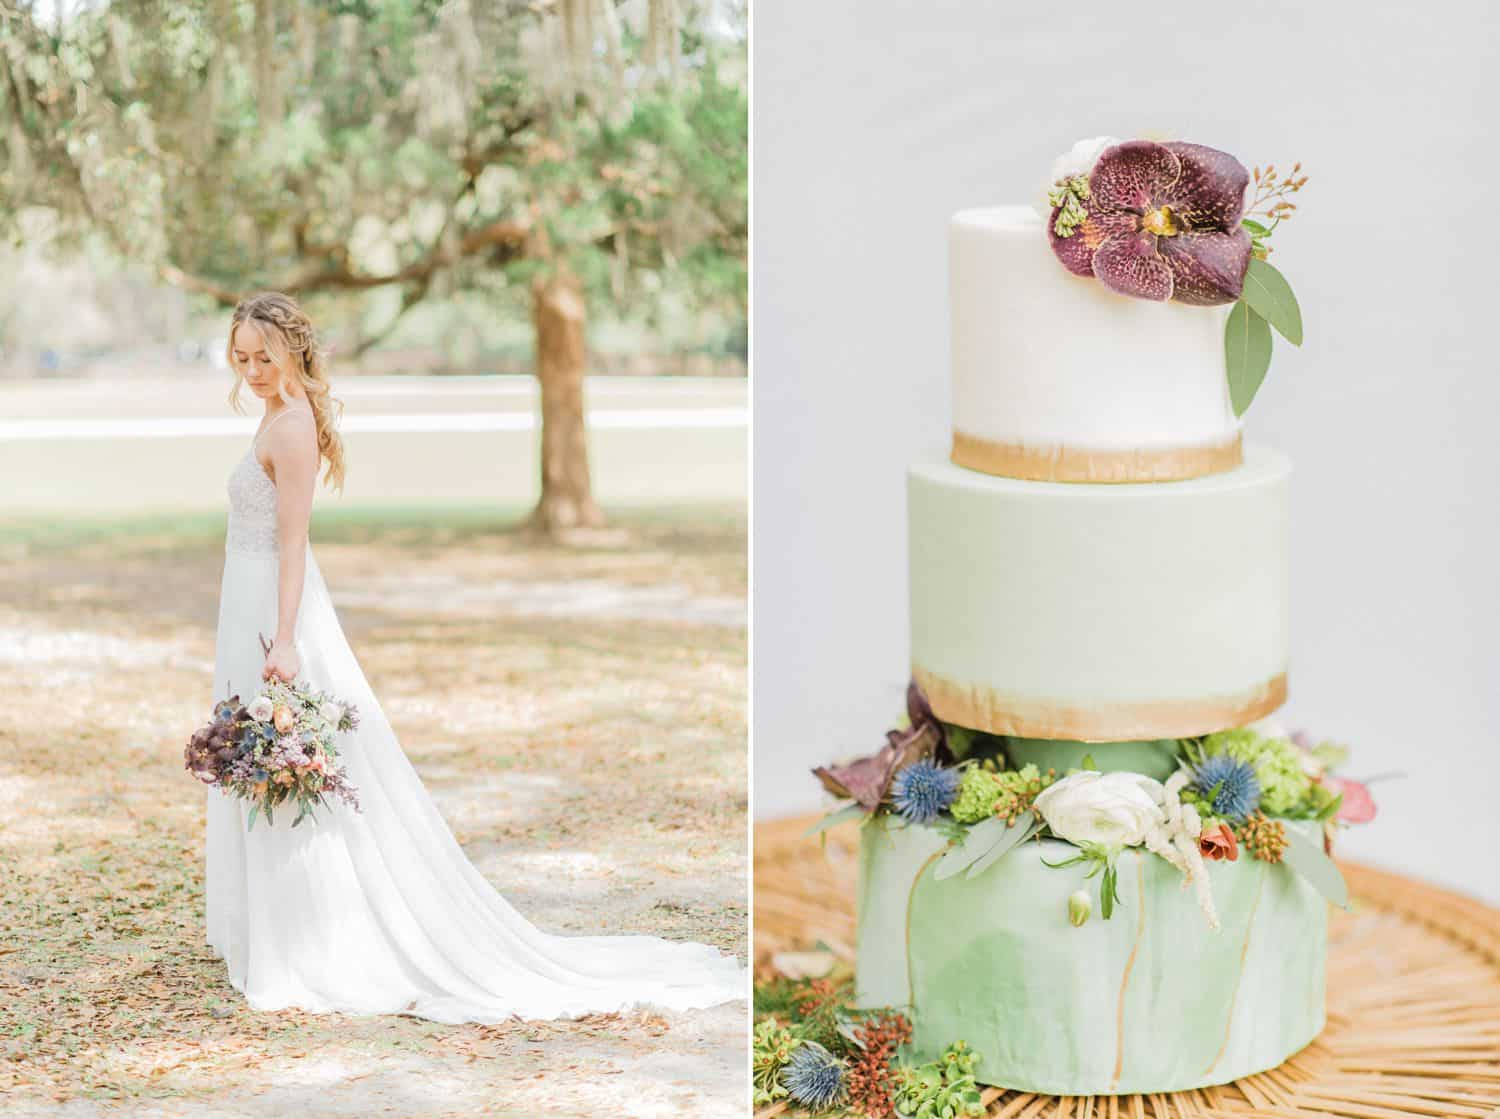 Bride and Pastel Wedding Cake with Gold, Purple, and Green: Get Photography Clients with Styled Shoots